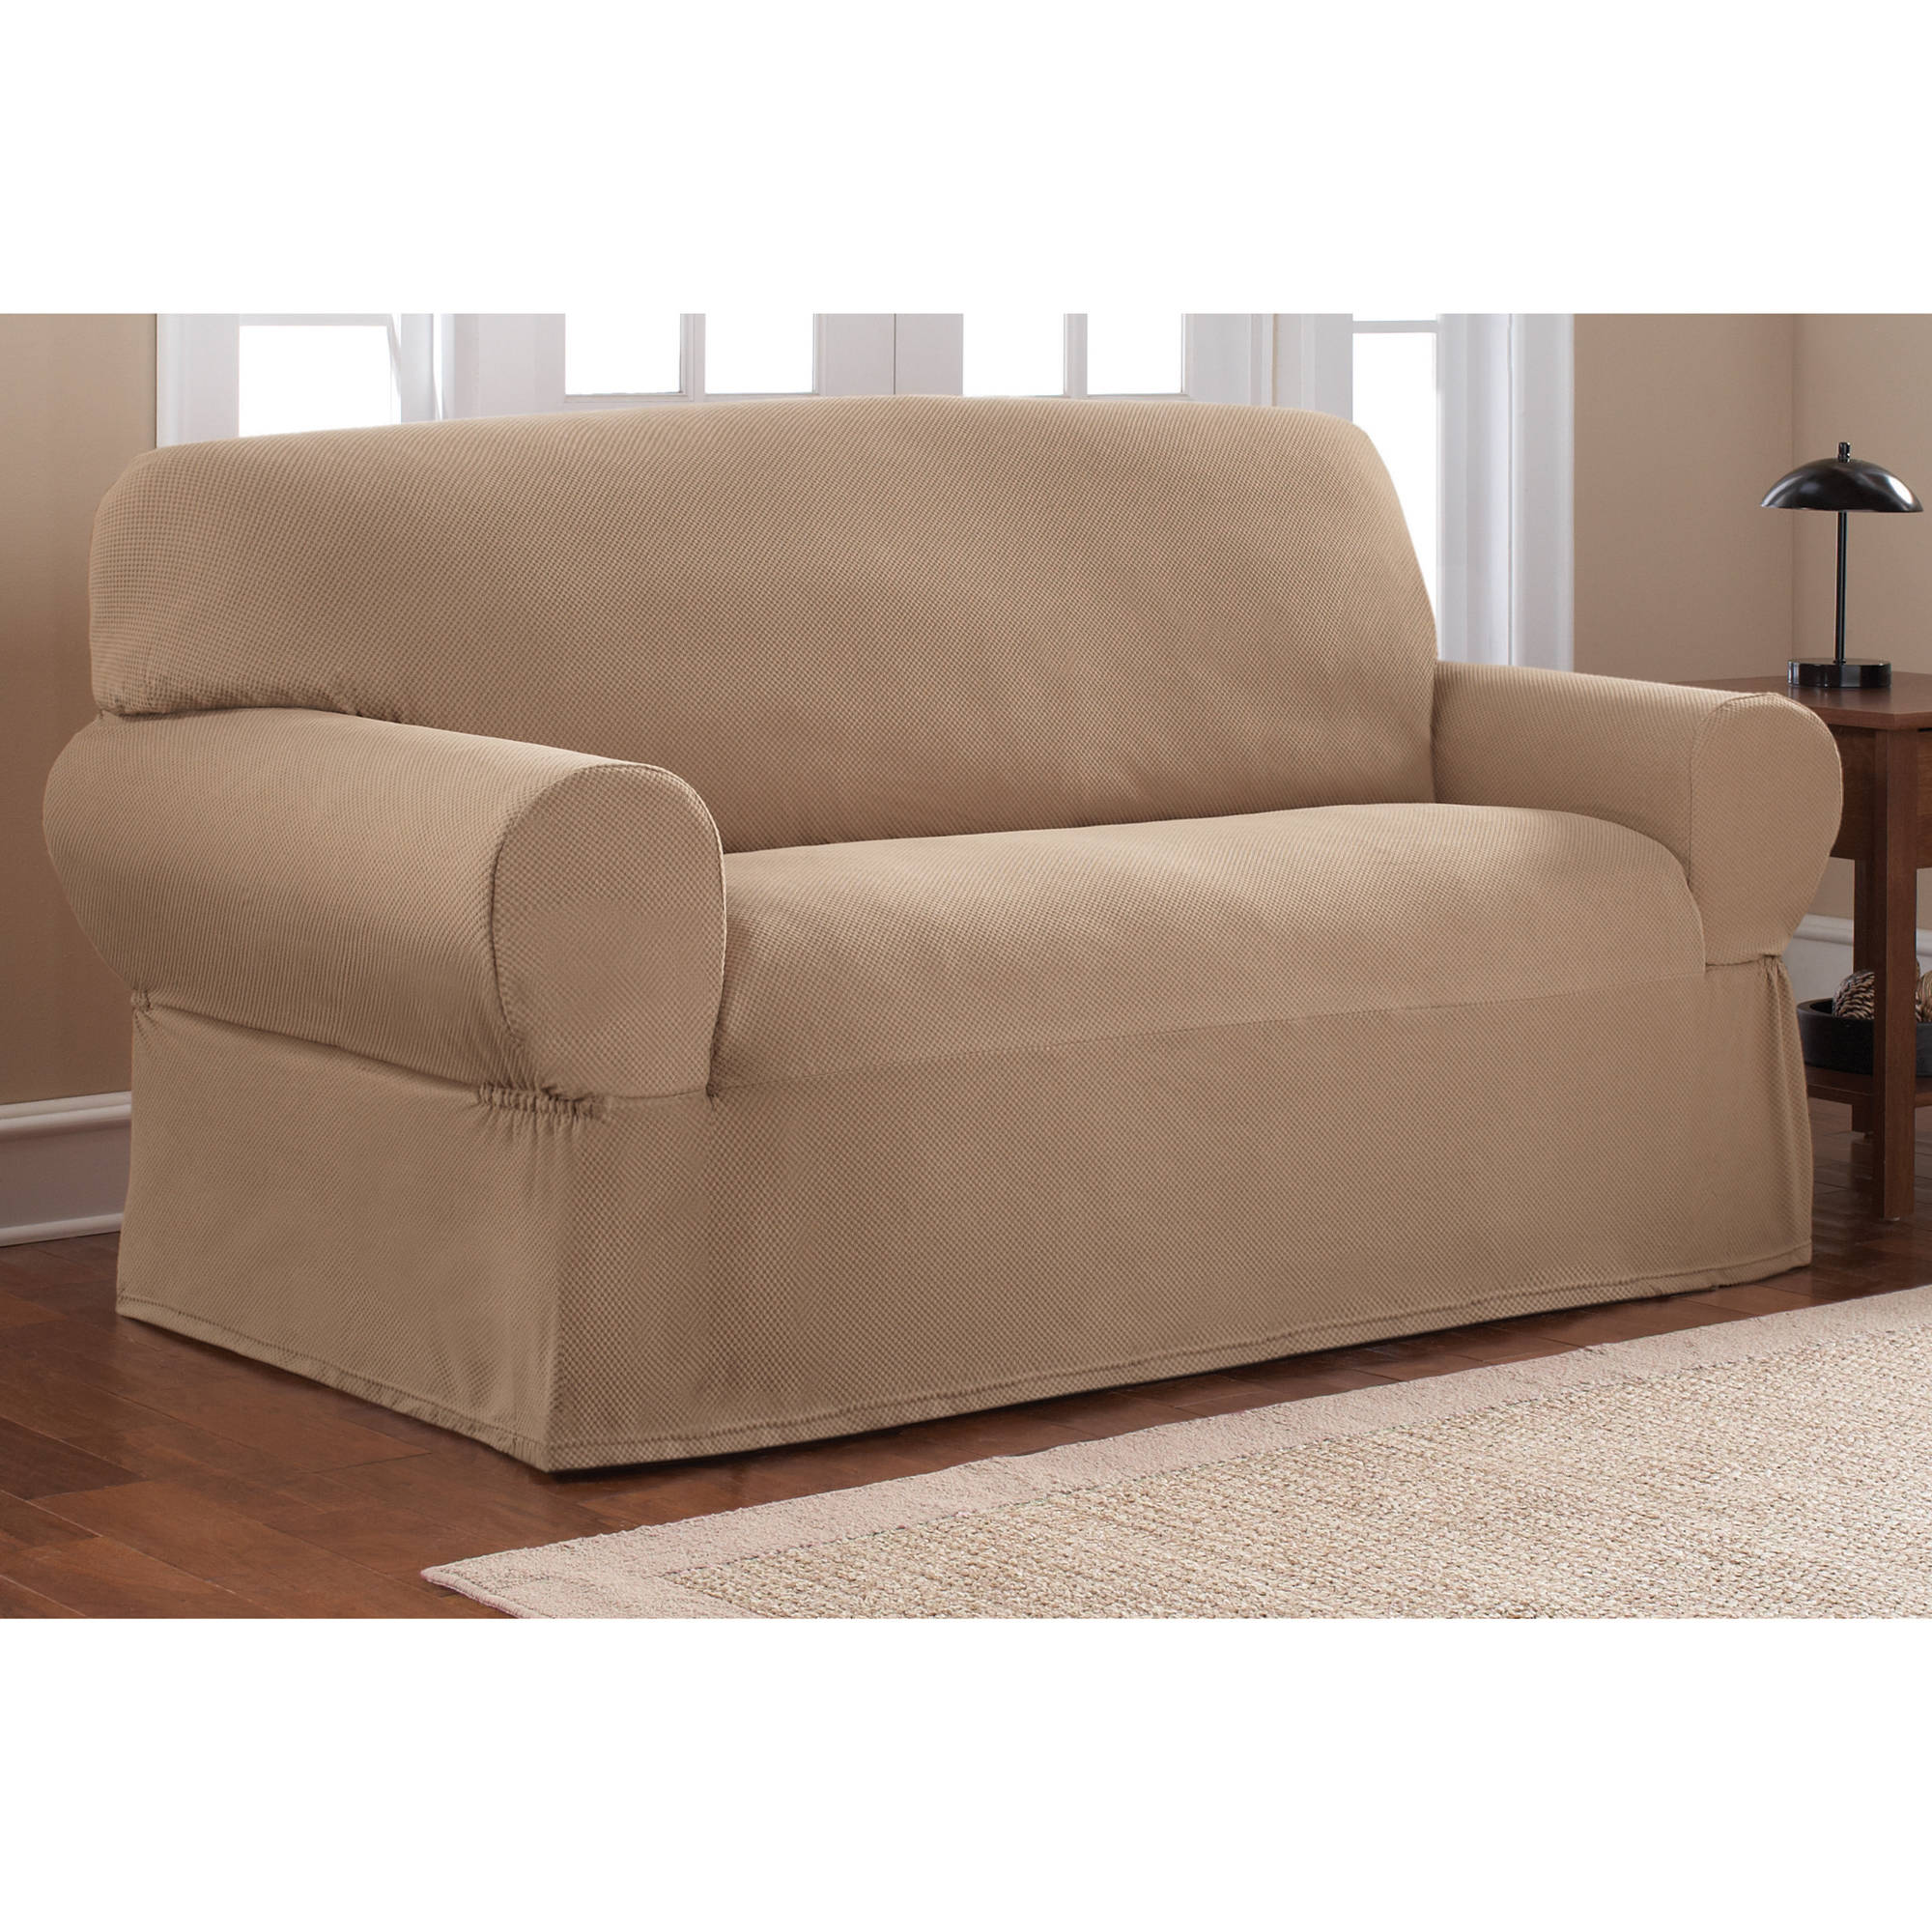 cover for dual reclining sofa john lewis todd review loveseat covers slipcover adapted